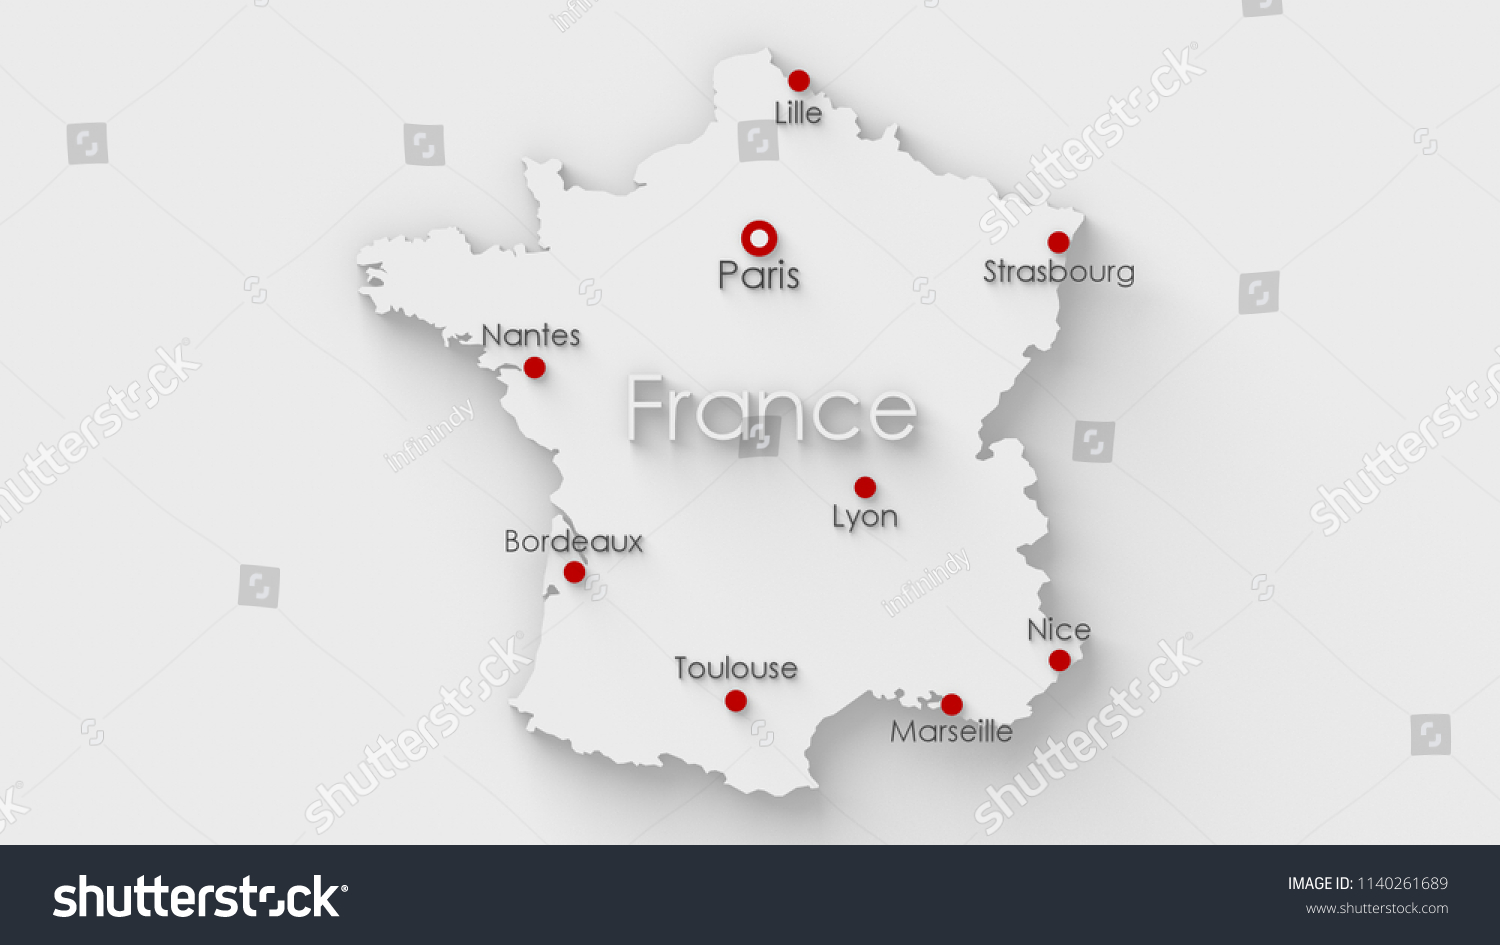 Map Of France Major Cities.Simple White Map France Capital Major Stock Illustration 1140261689